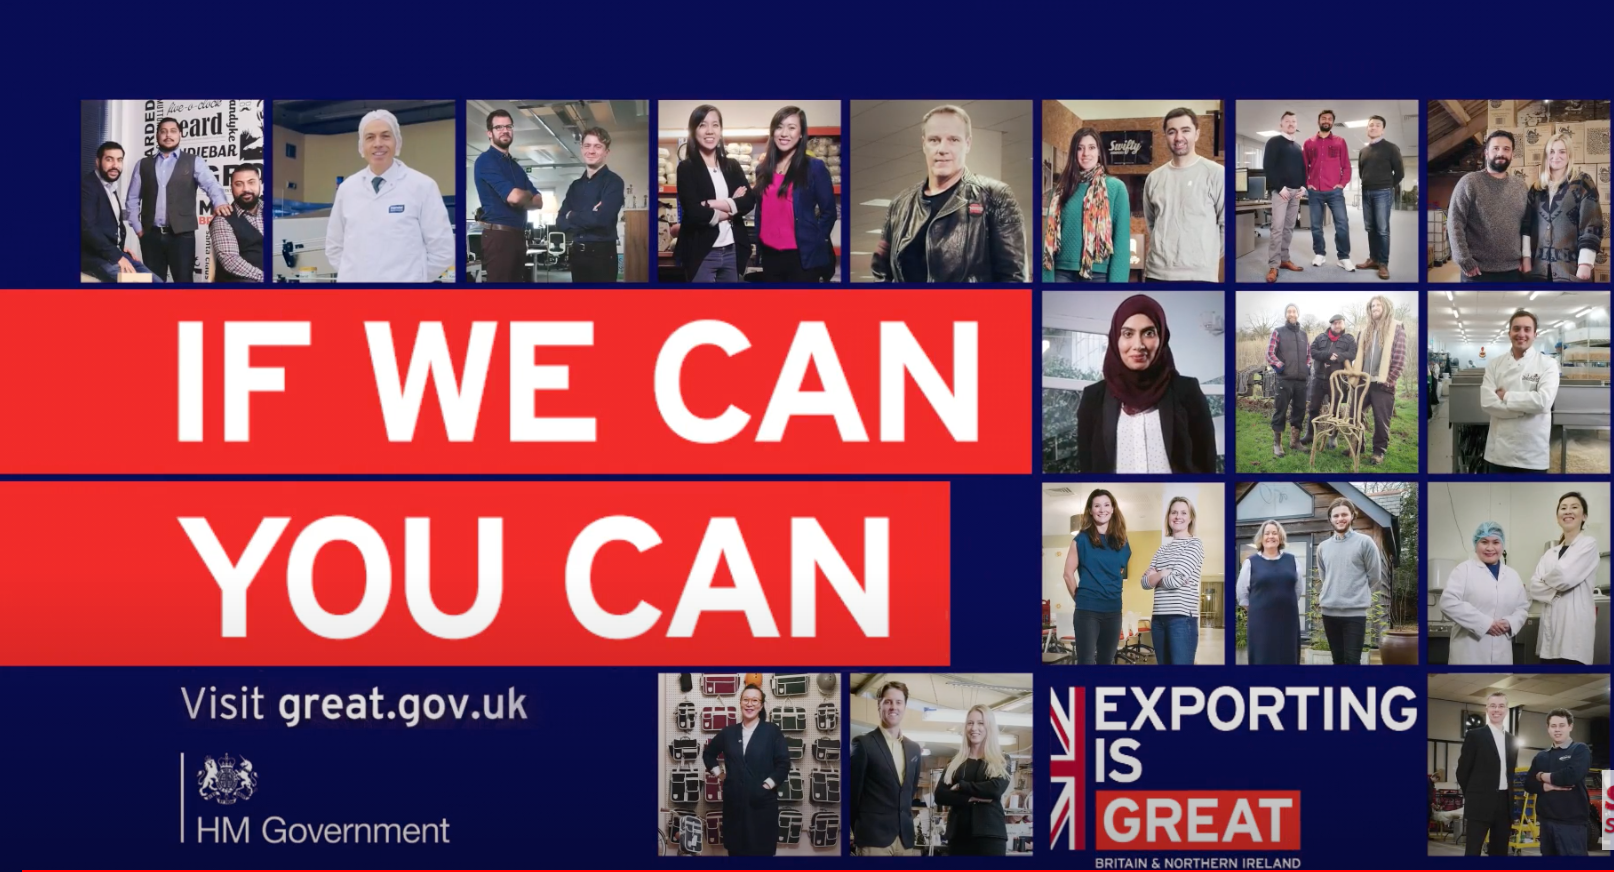 Above: Building on the Exporting is Great campaign, Emily Lambert, trade advisor from the Department of International Trade will be sharing what help is available for card companies and retailers from govt on the export front.